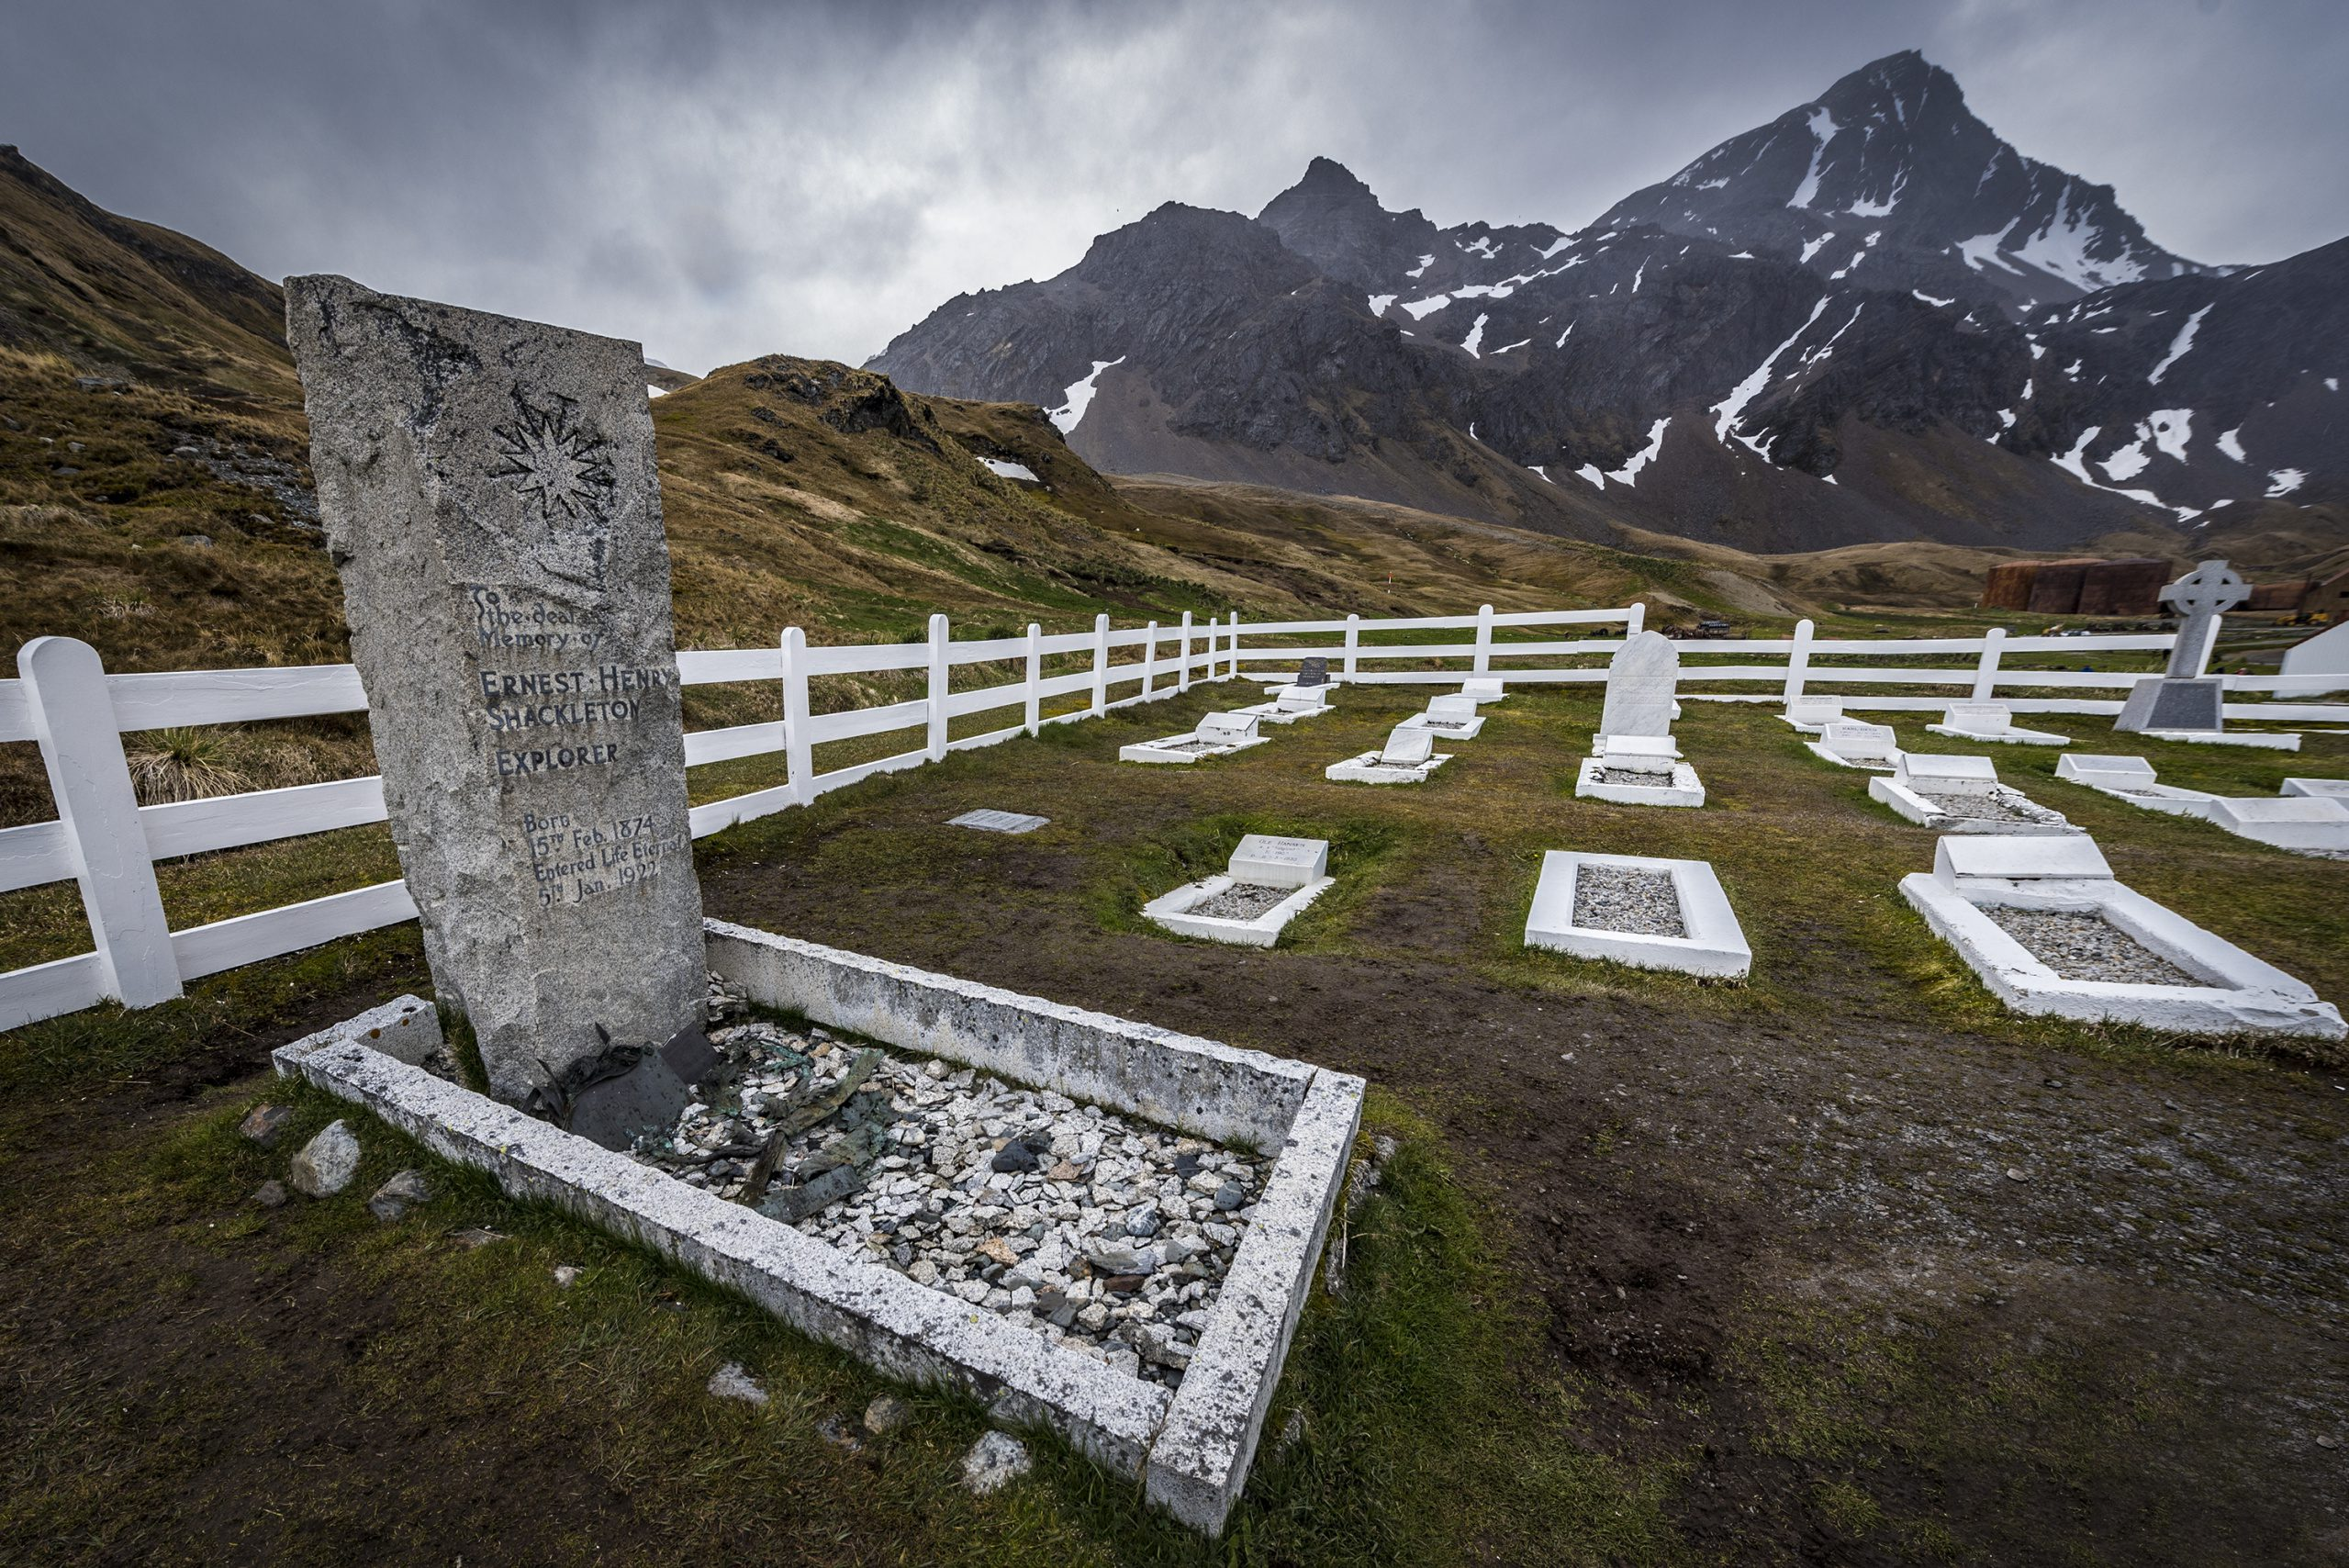 the tomb of explorer Ernest Shackleton in a small graveyard with mountains in the background